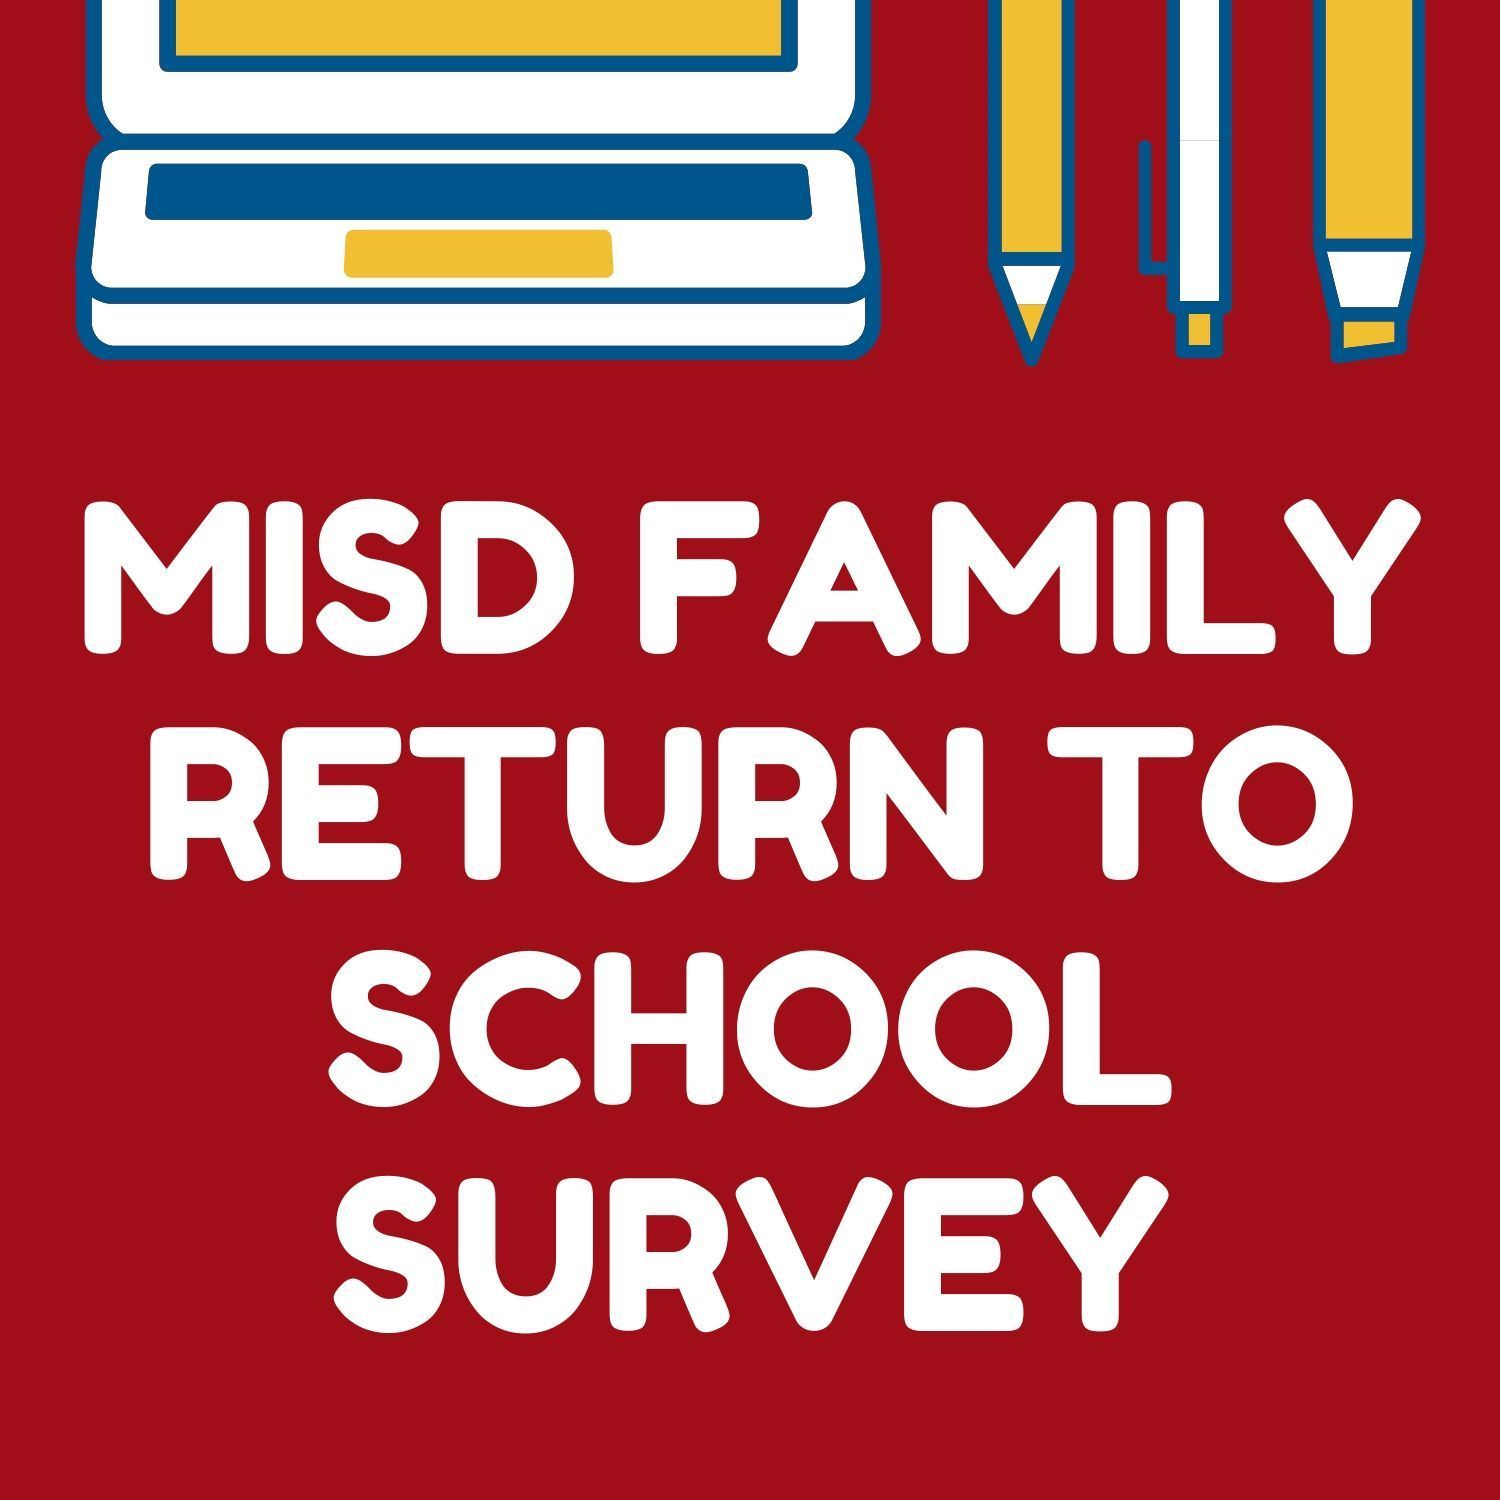 MISD Family Return to School Survey